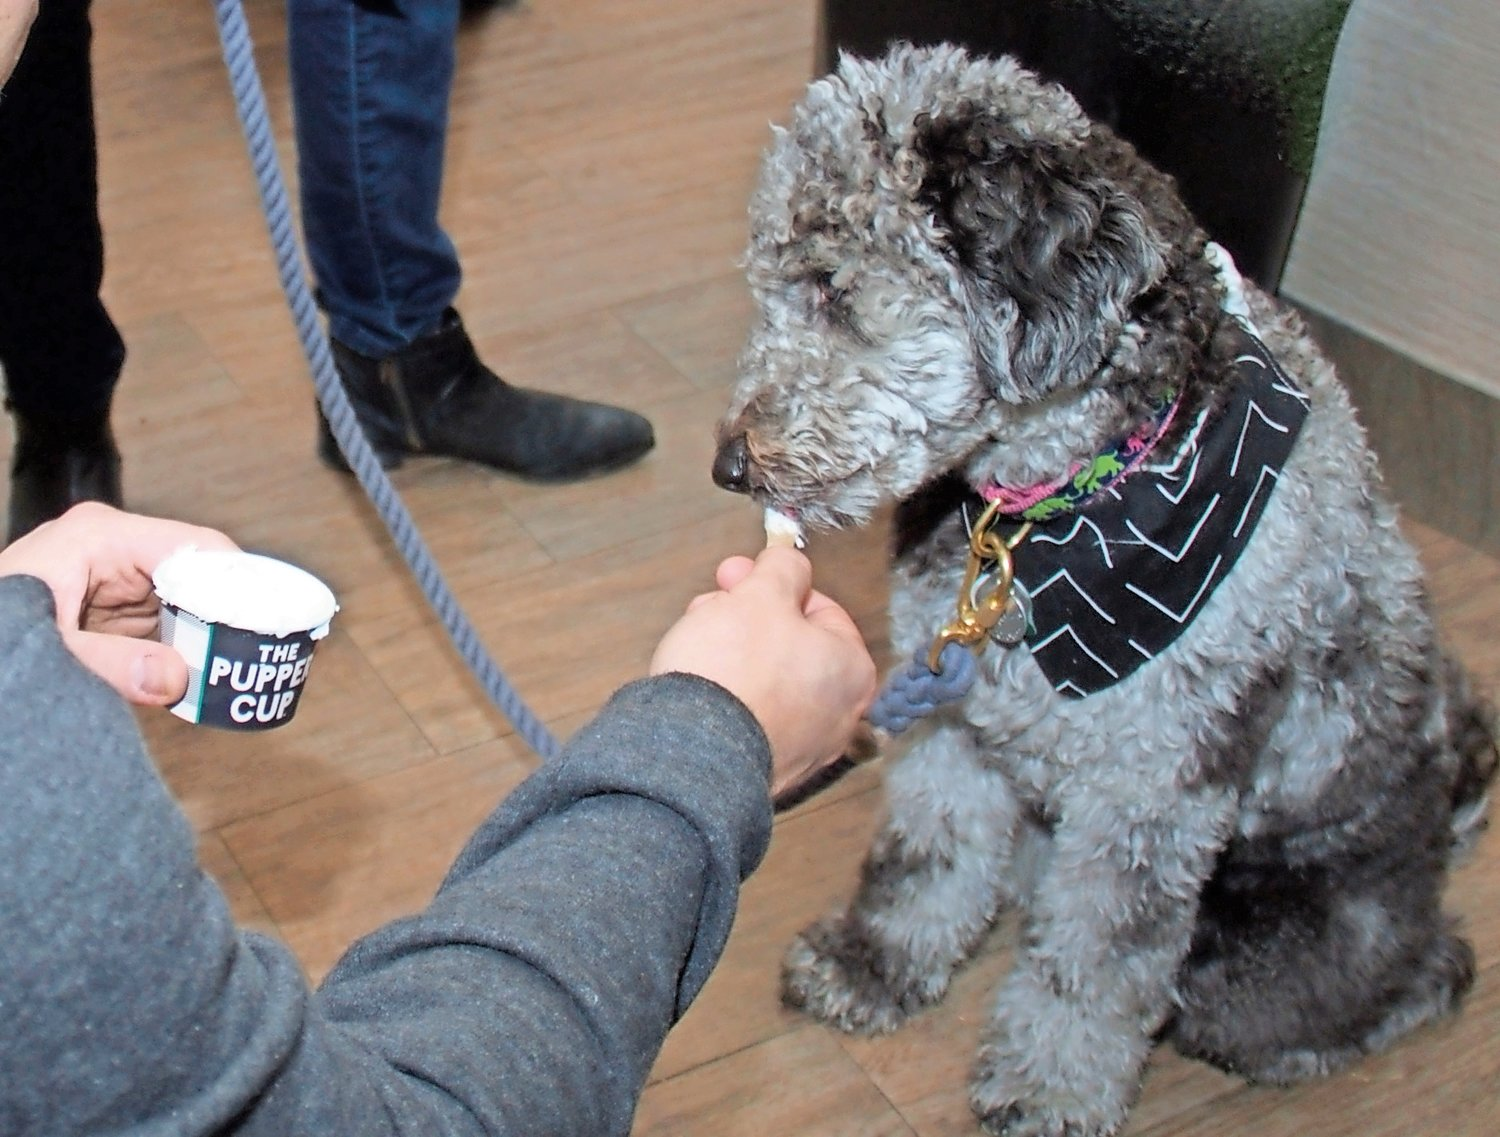 Mollie, a minnie golden doodle, liked the ice cream for dogs so much that she had a second helping.